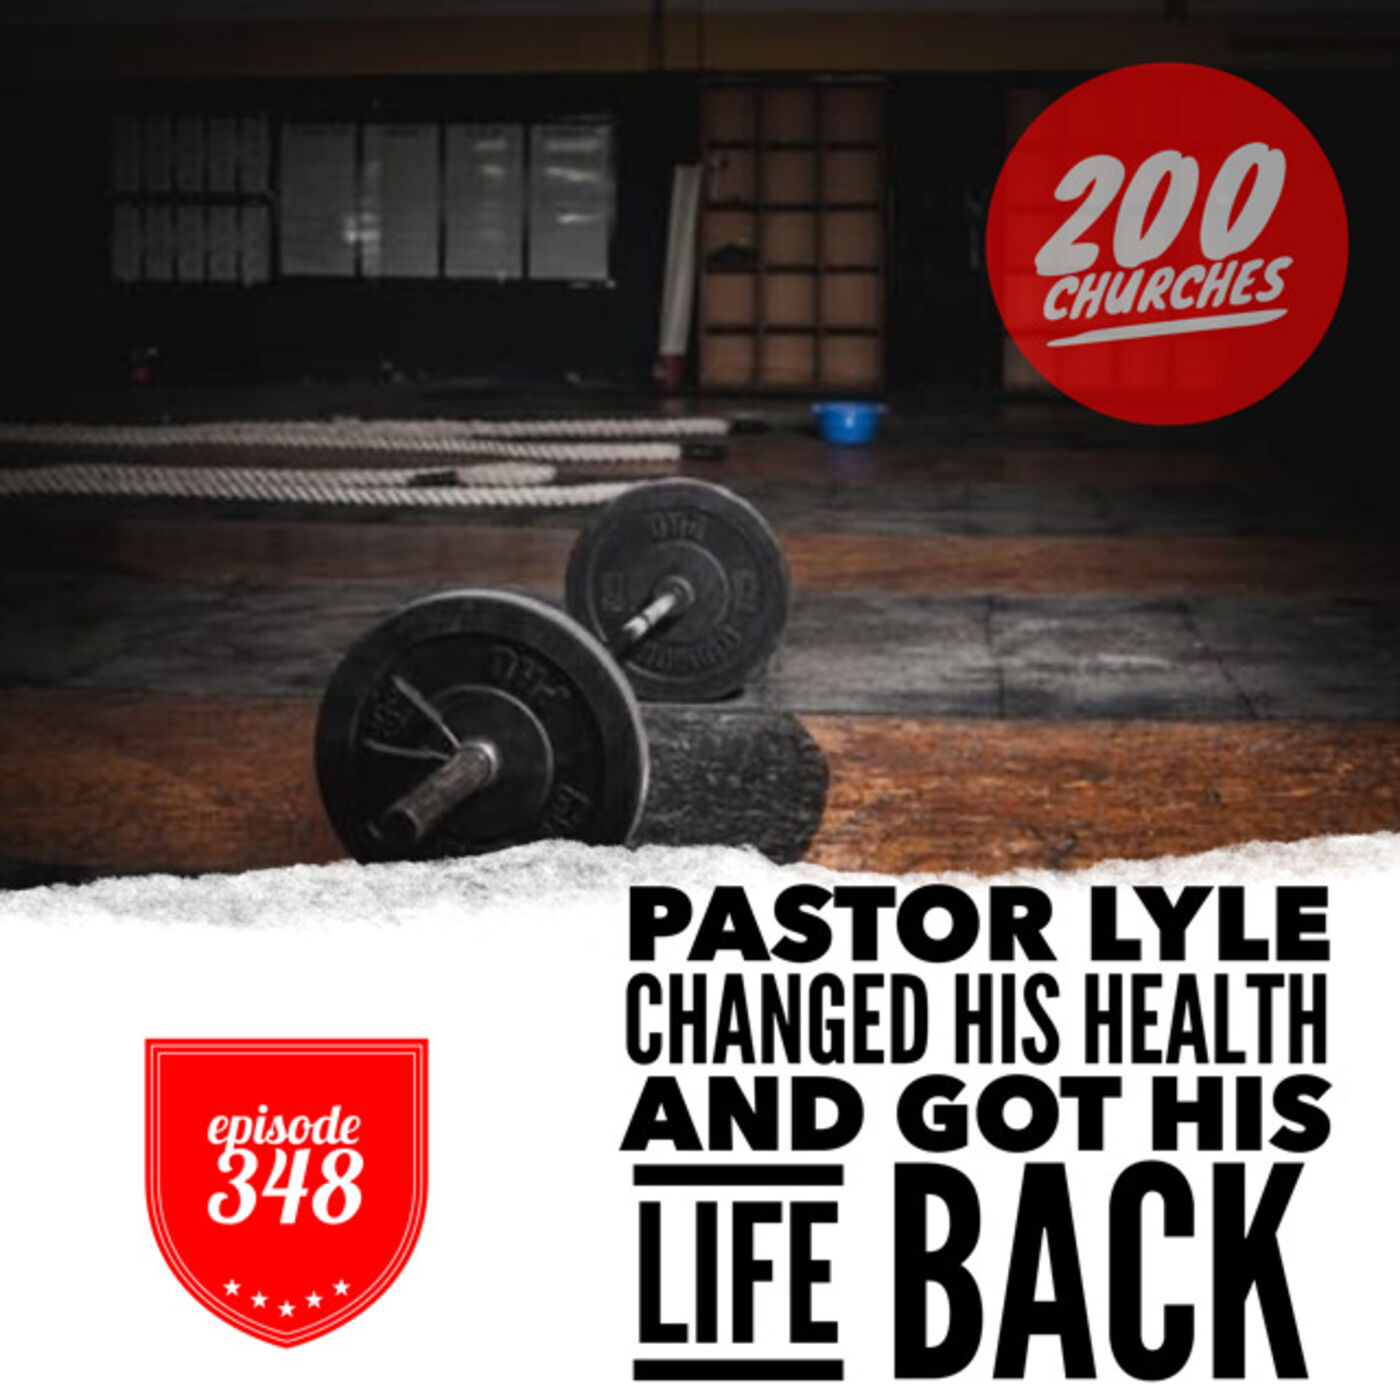 Episode 348 - How Pastor Lyle changed his health, lost 77 pounds, and you can too!